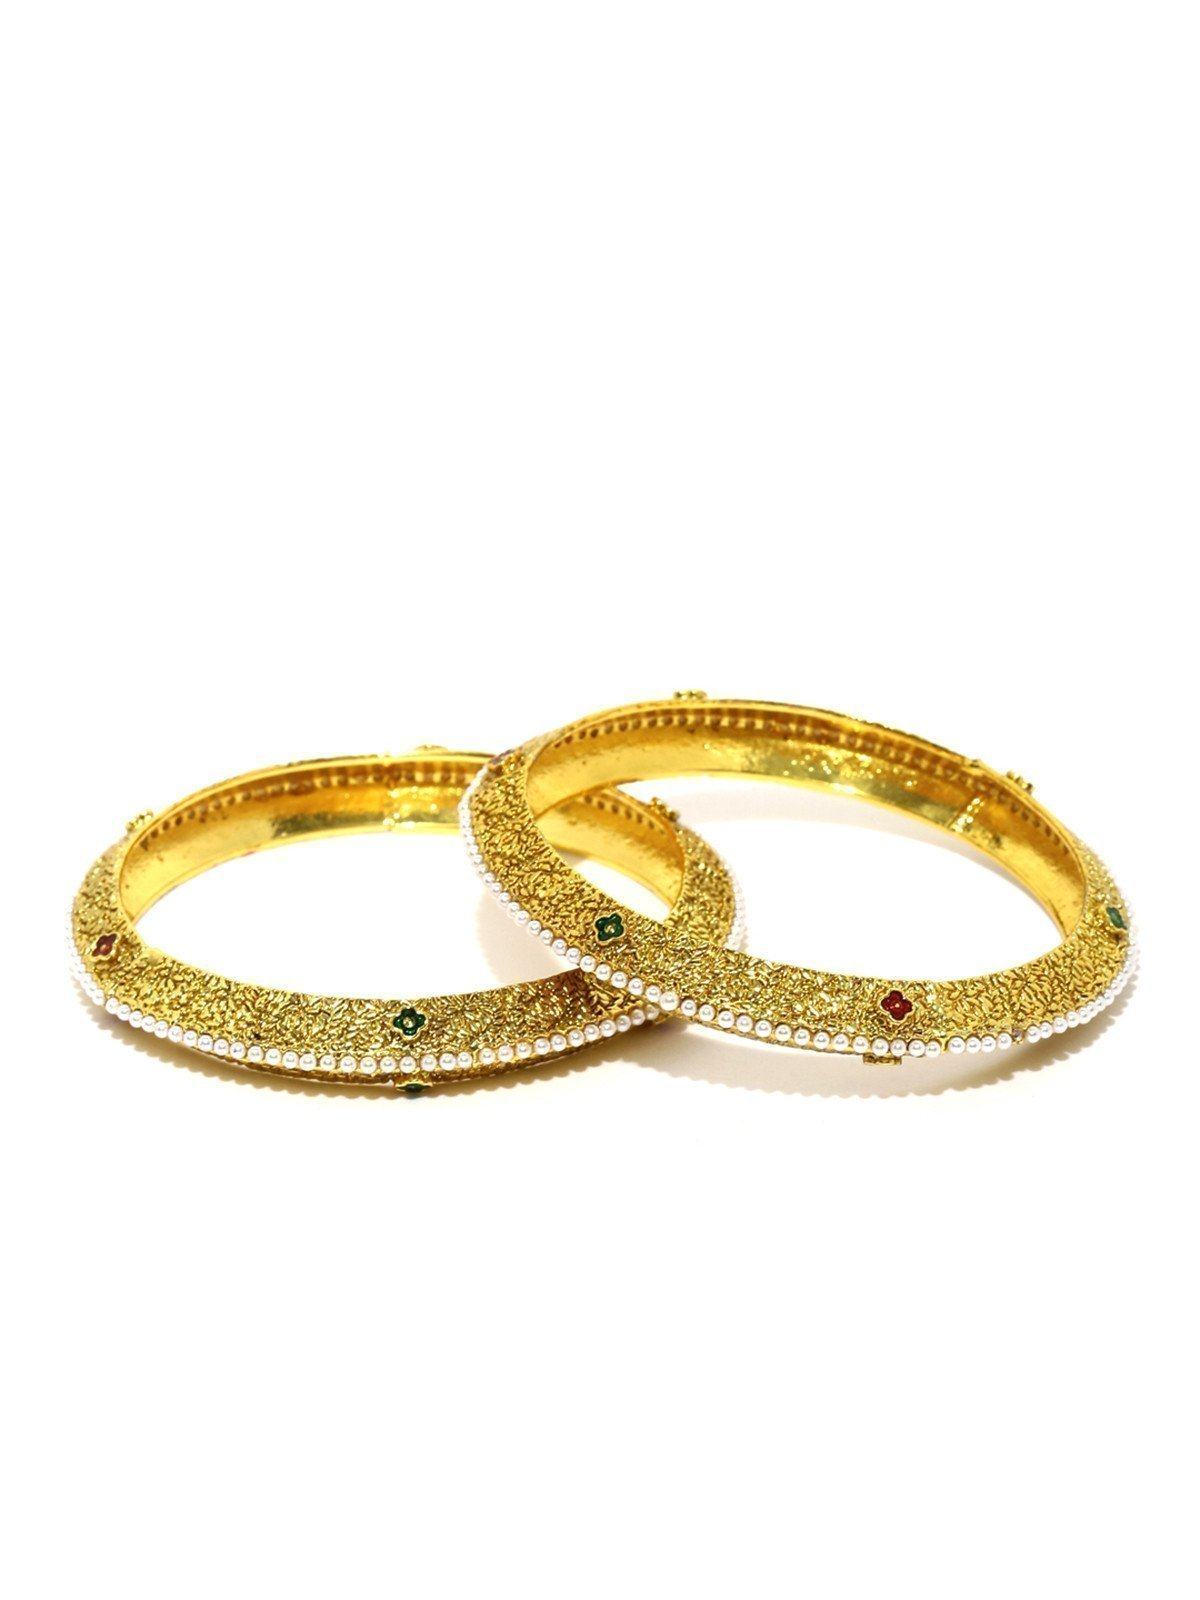 Set Of 2 Finely Detailed & Pearls Studded Bangles